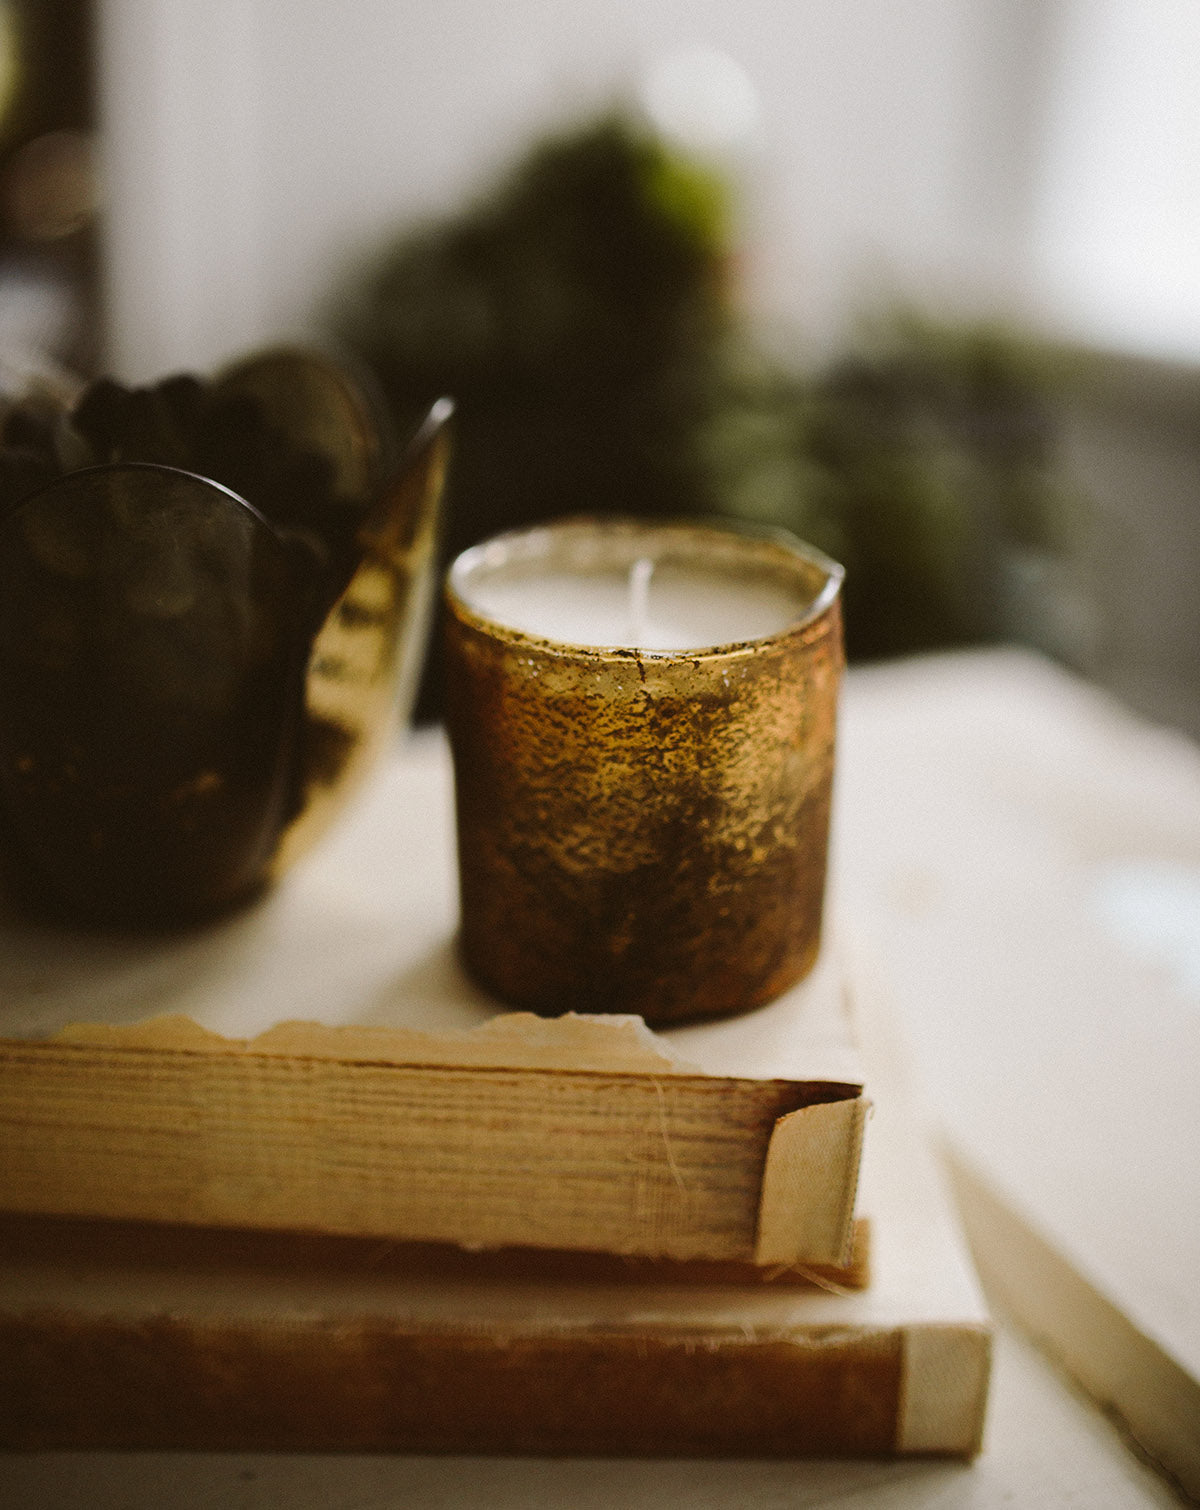 Create your own homemade pumpkin spice candle #crafts #DIY #candle #home